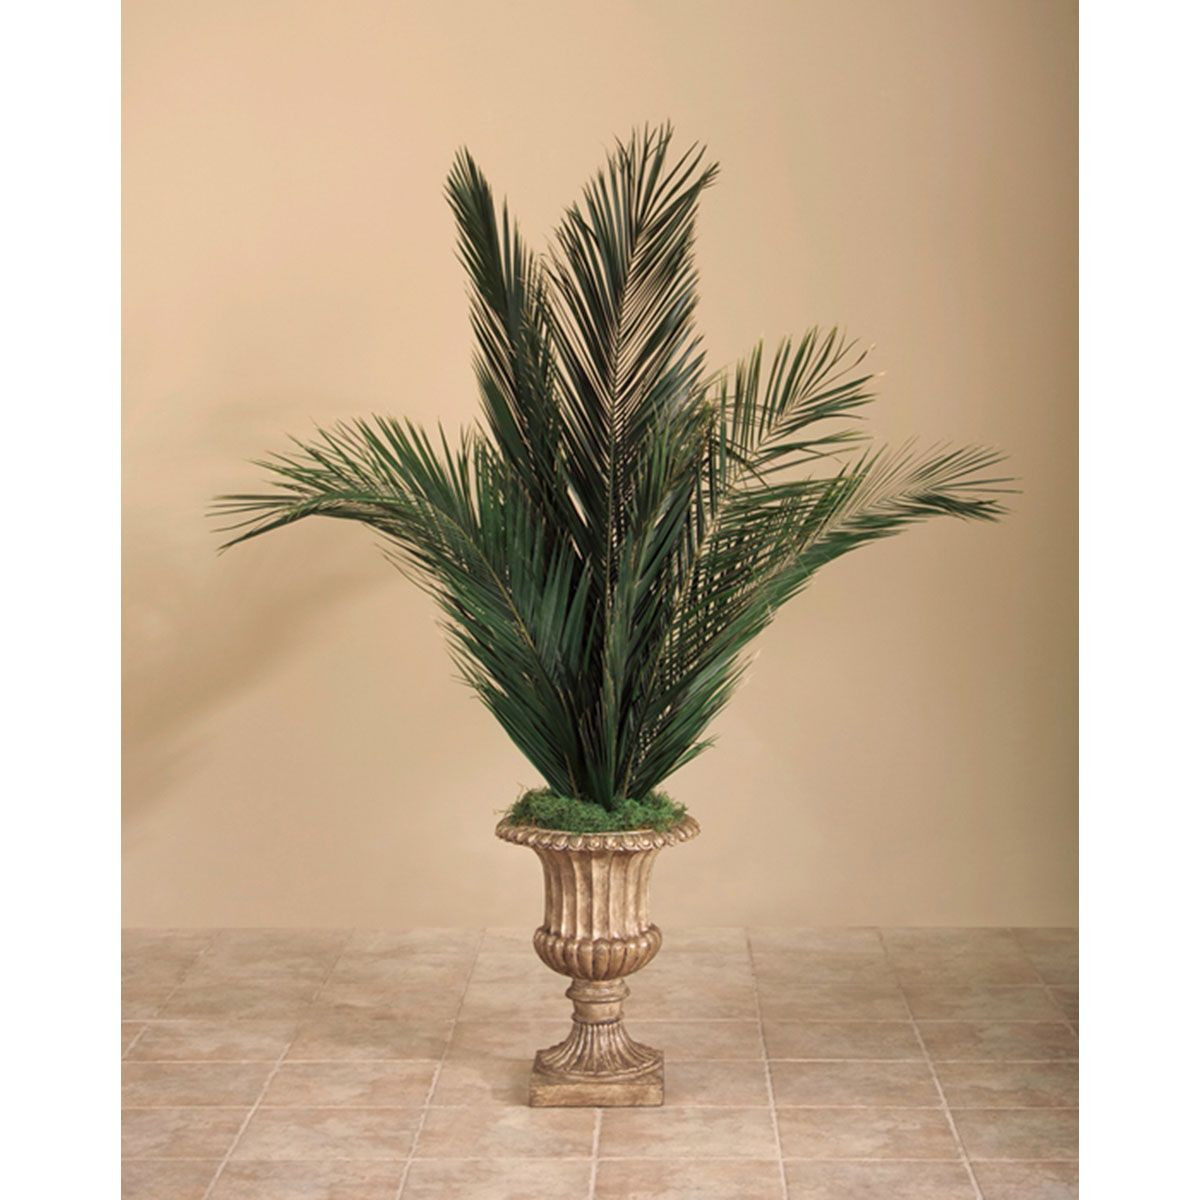 john richard vase of jrb 0235 john richard pinterest for john richard phoenix palms in urn